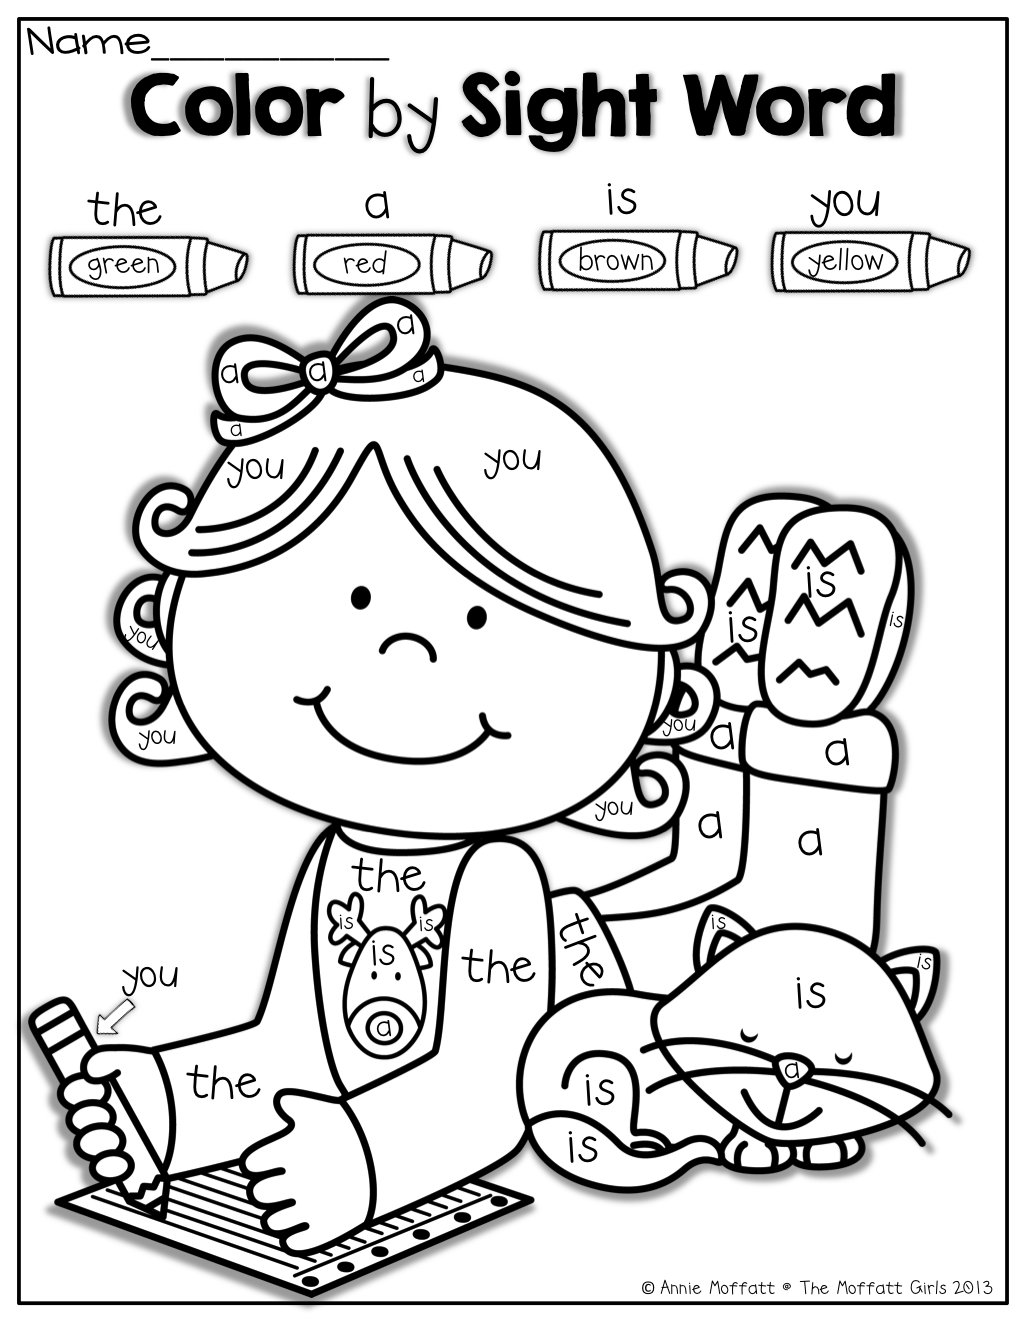 Worksheets Color By Sight Word Worksheets color by sight word december pinterest kindergarten school word